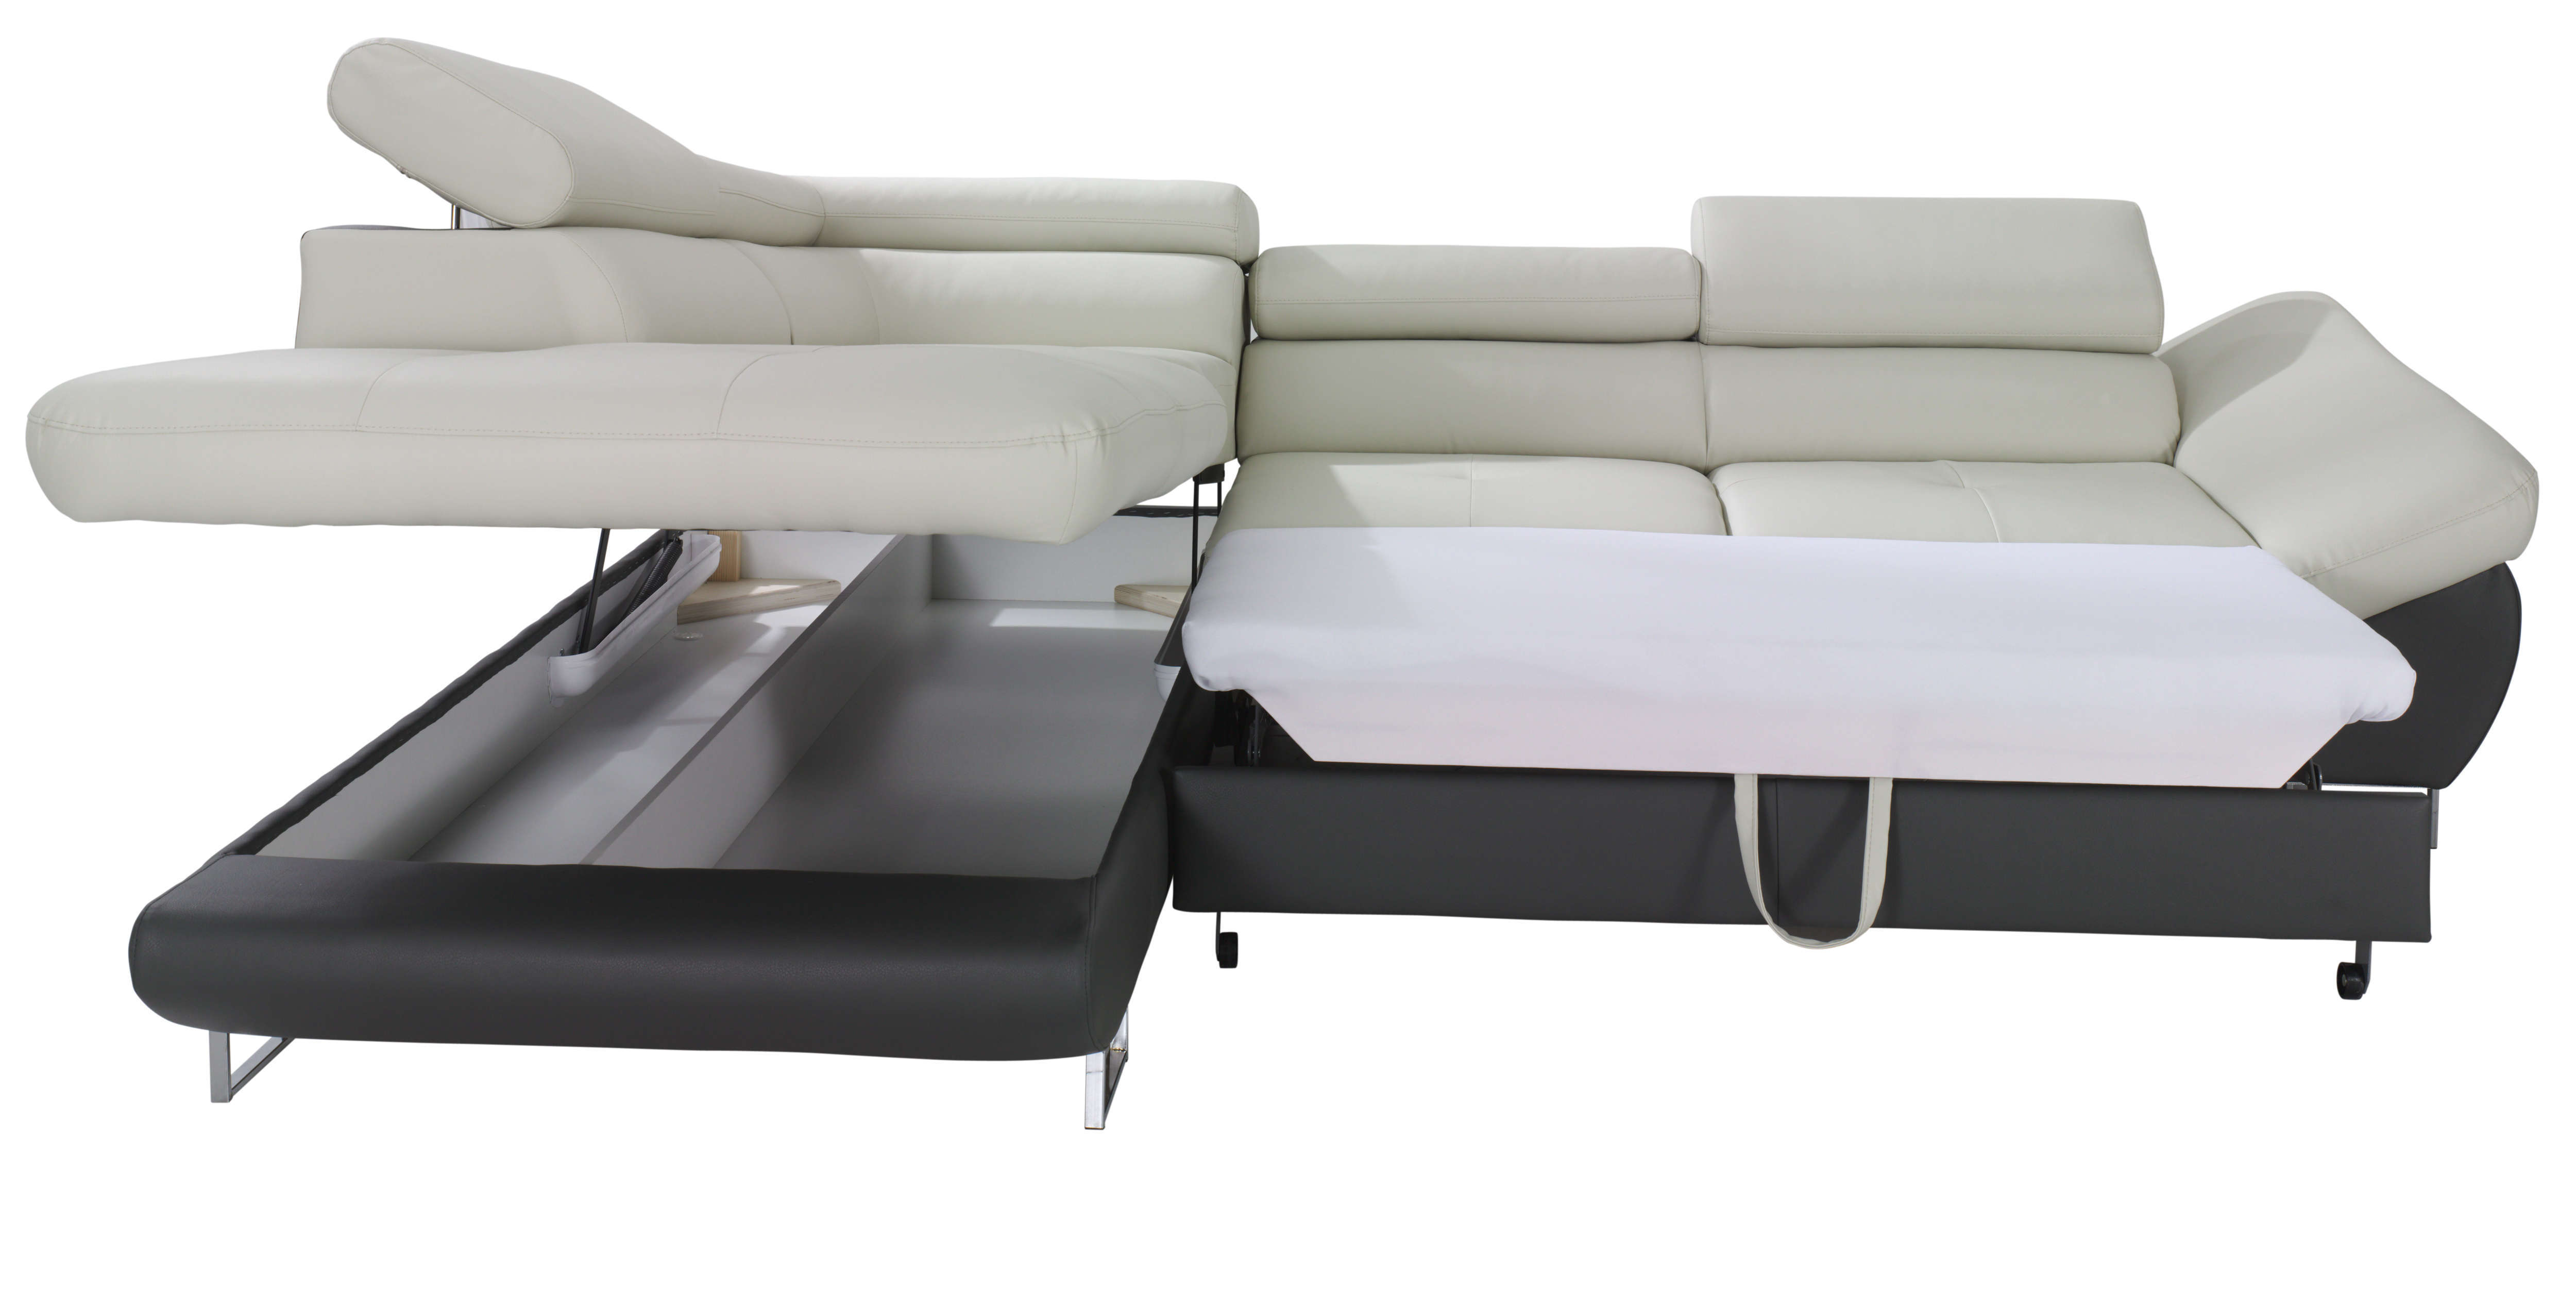 Couch Bed With Storage Fabio Sectional Sofa Sleeper With Storage Creative Furniture